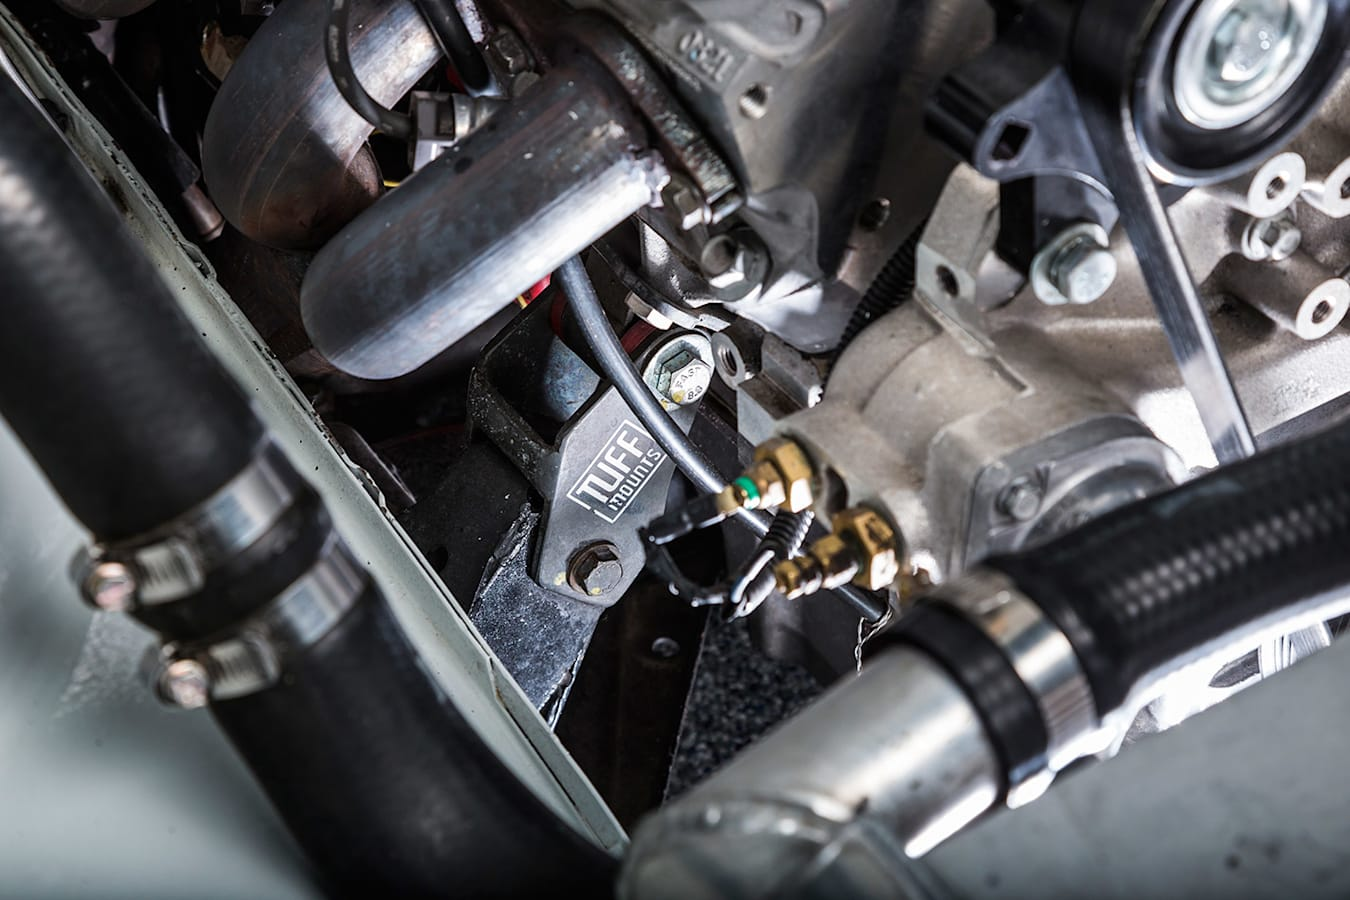 Holden VH Commodore engine